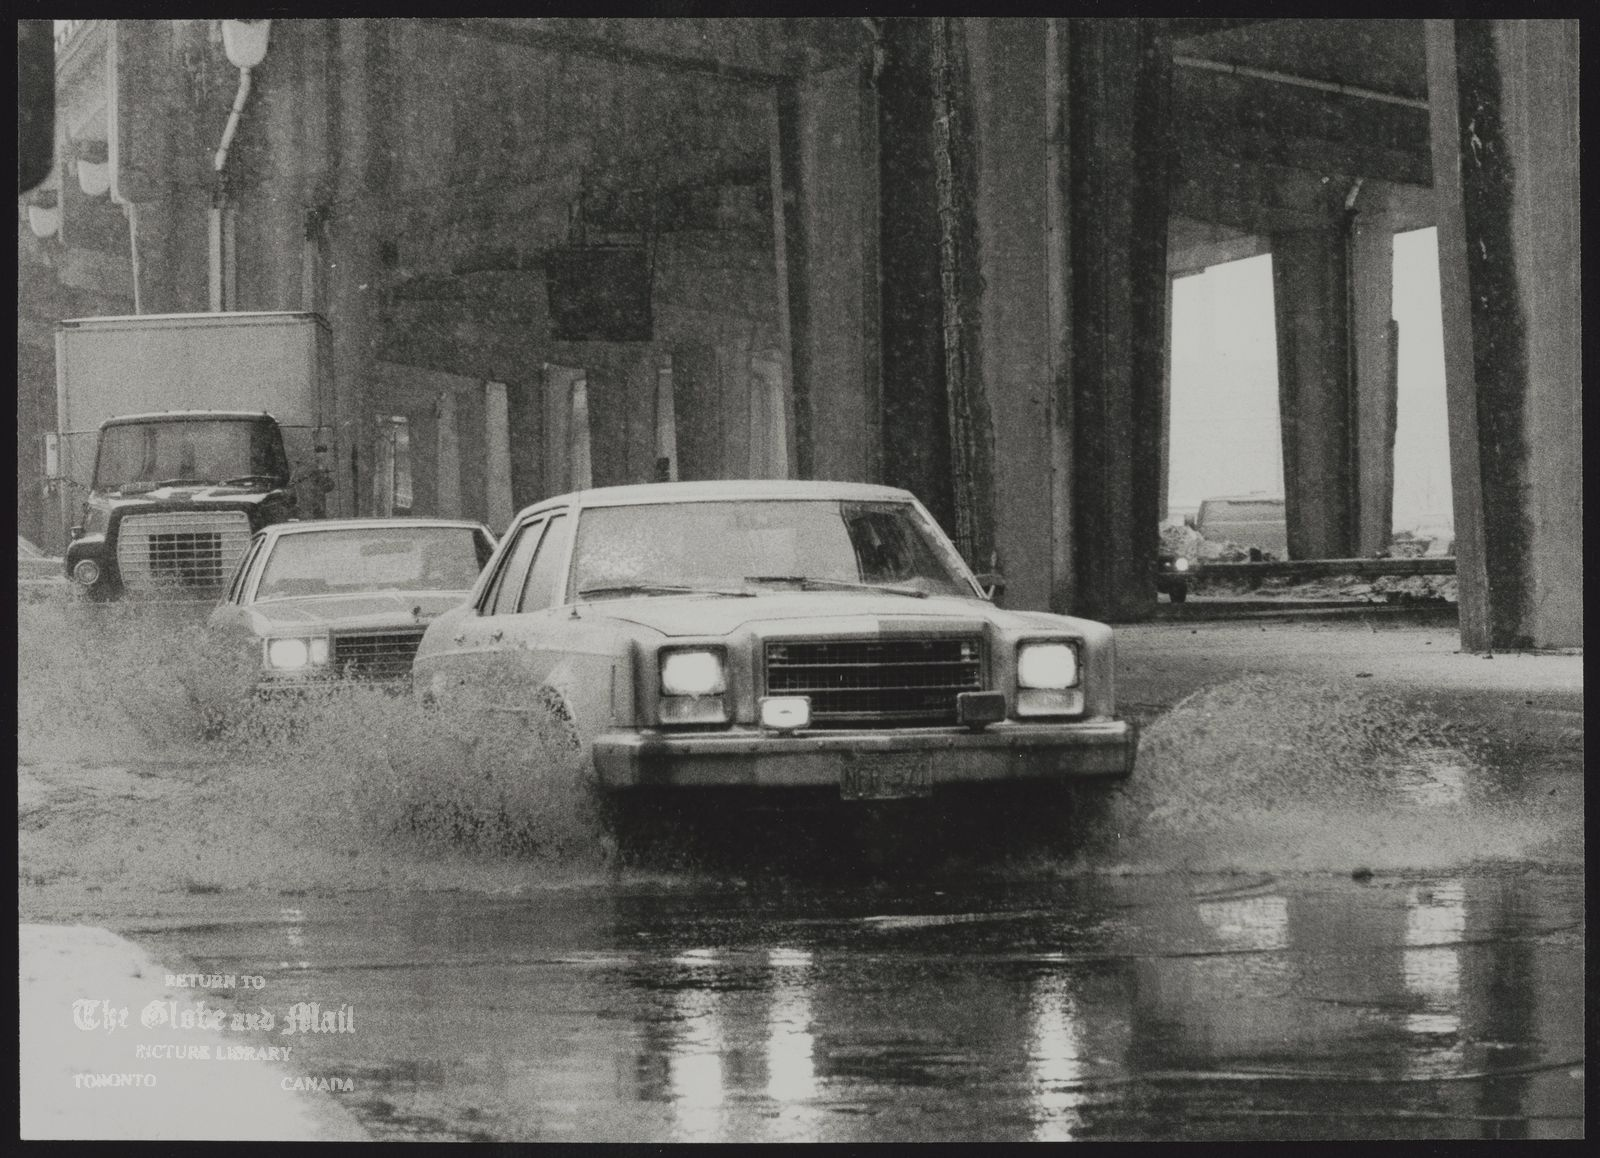 The notes transcribed from the back of this photograph are as follows: A broken water main flooded the area near the intersection of York Street, Front Street and University Avenue and south to Lakeshore Blvd. this morning, causing massive traffic jams for communters.